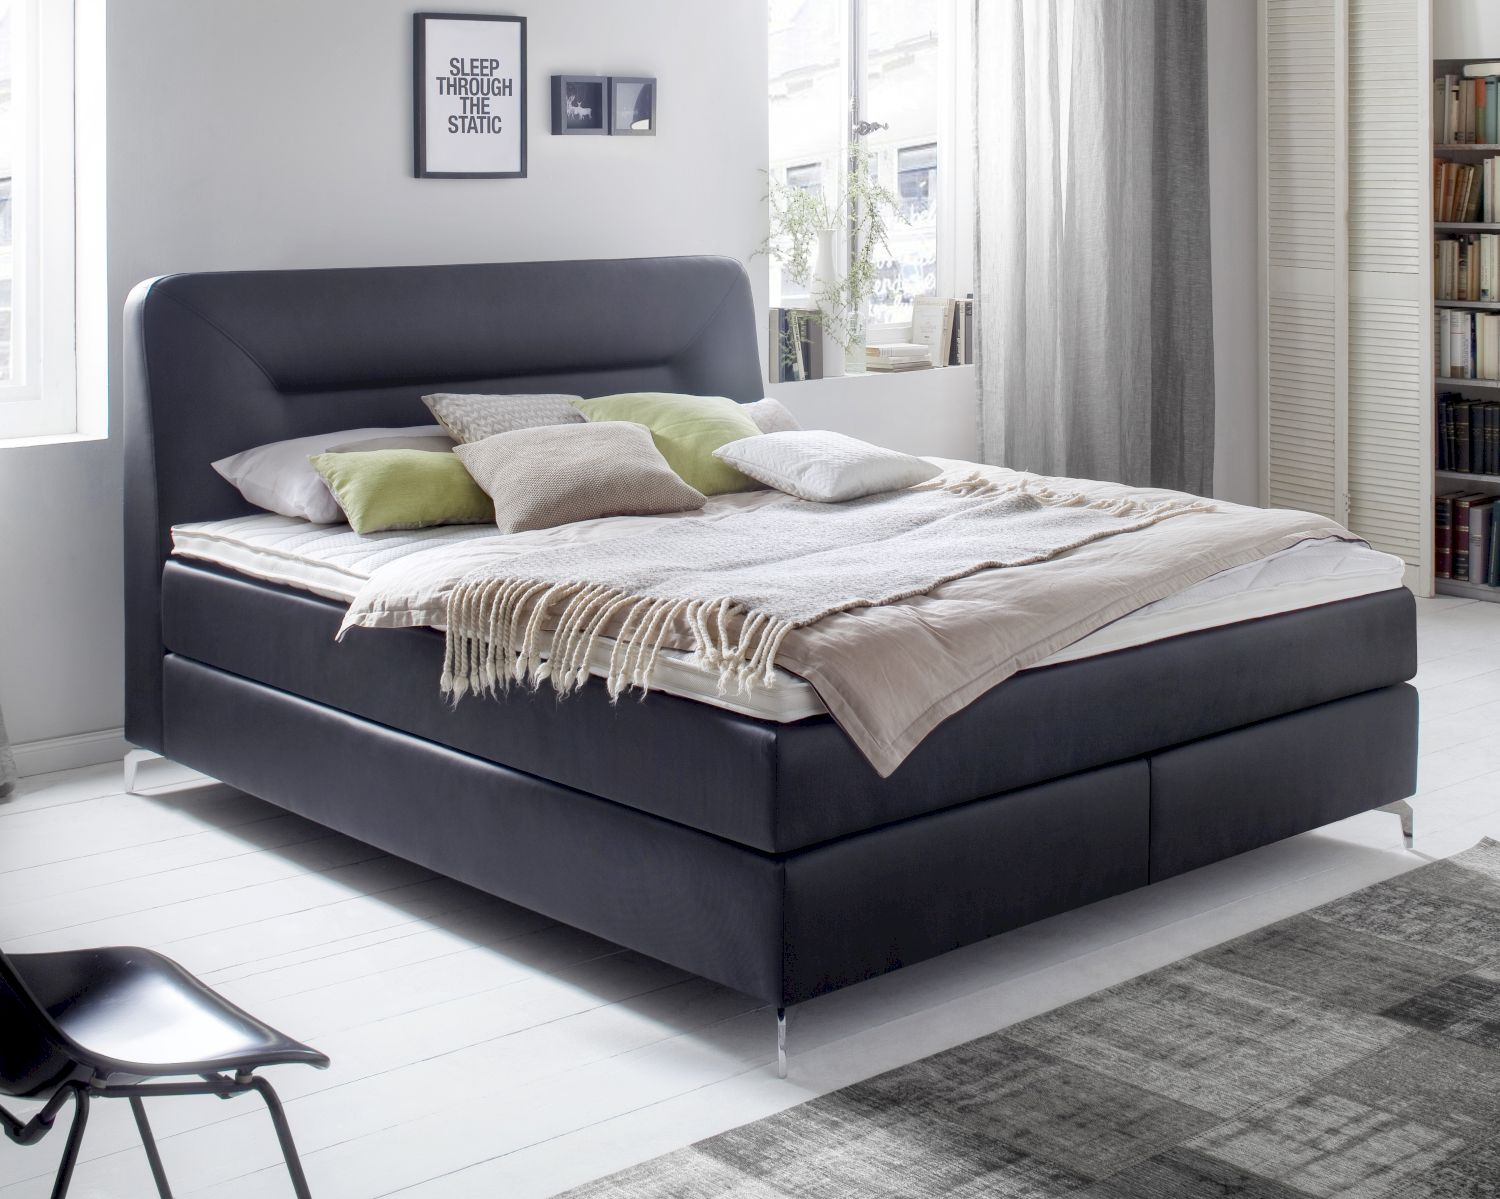 meise m bel boxspringbett cocktail kaufen. Black Bedroom Furniture Sets. Home Design Ideas